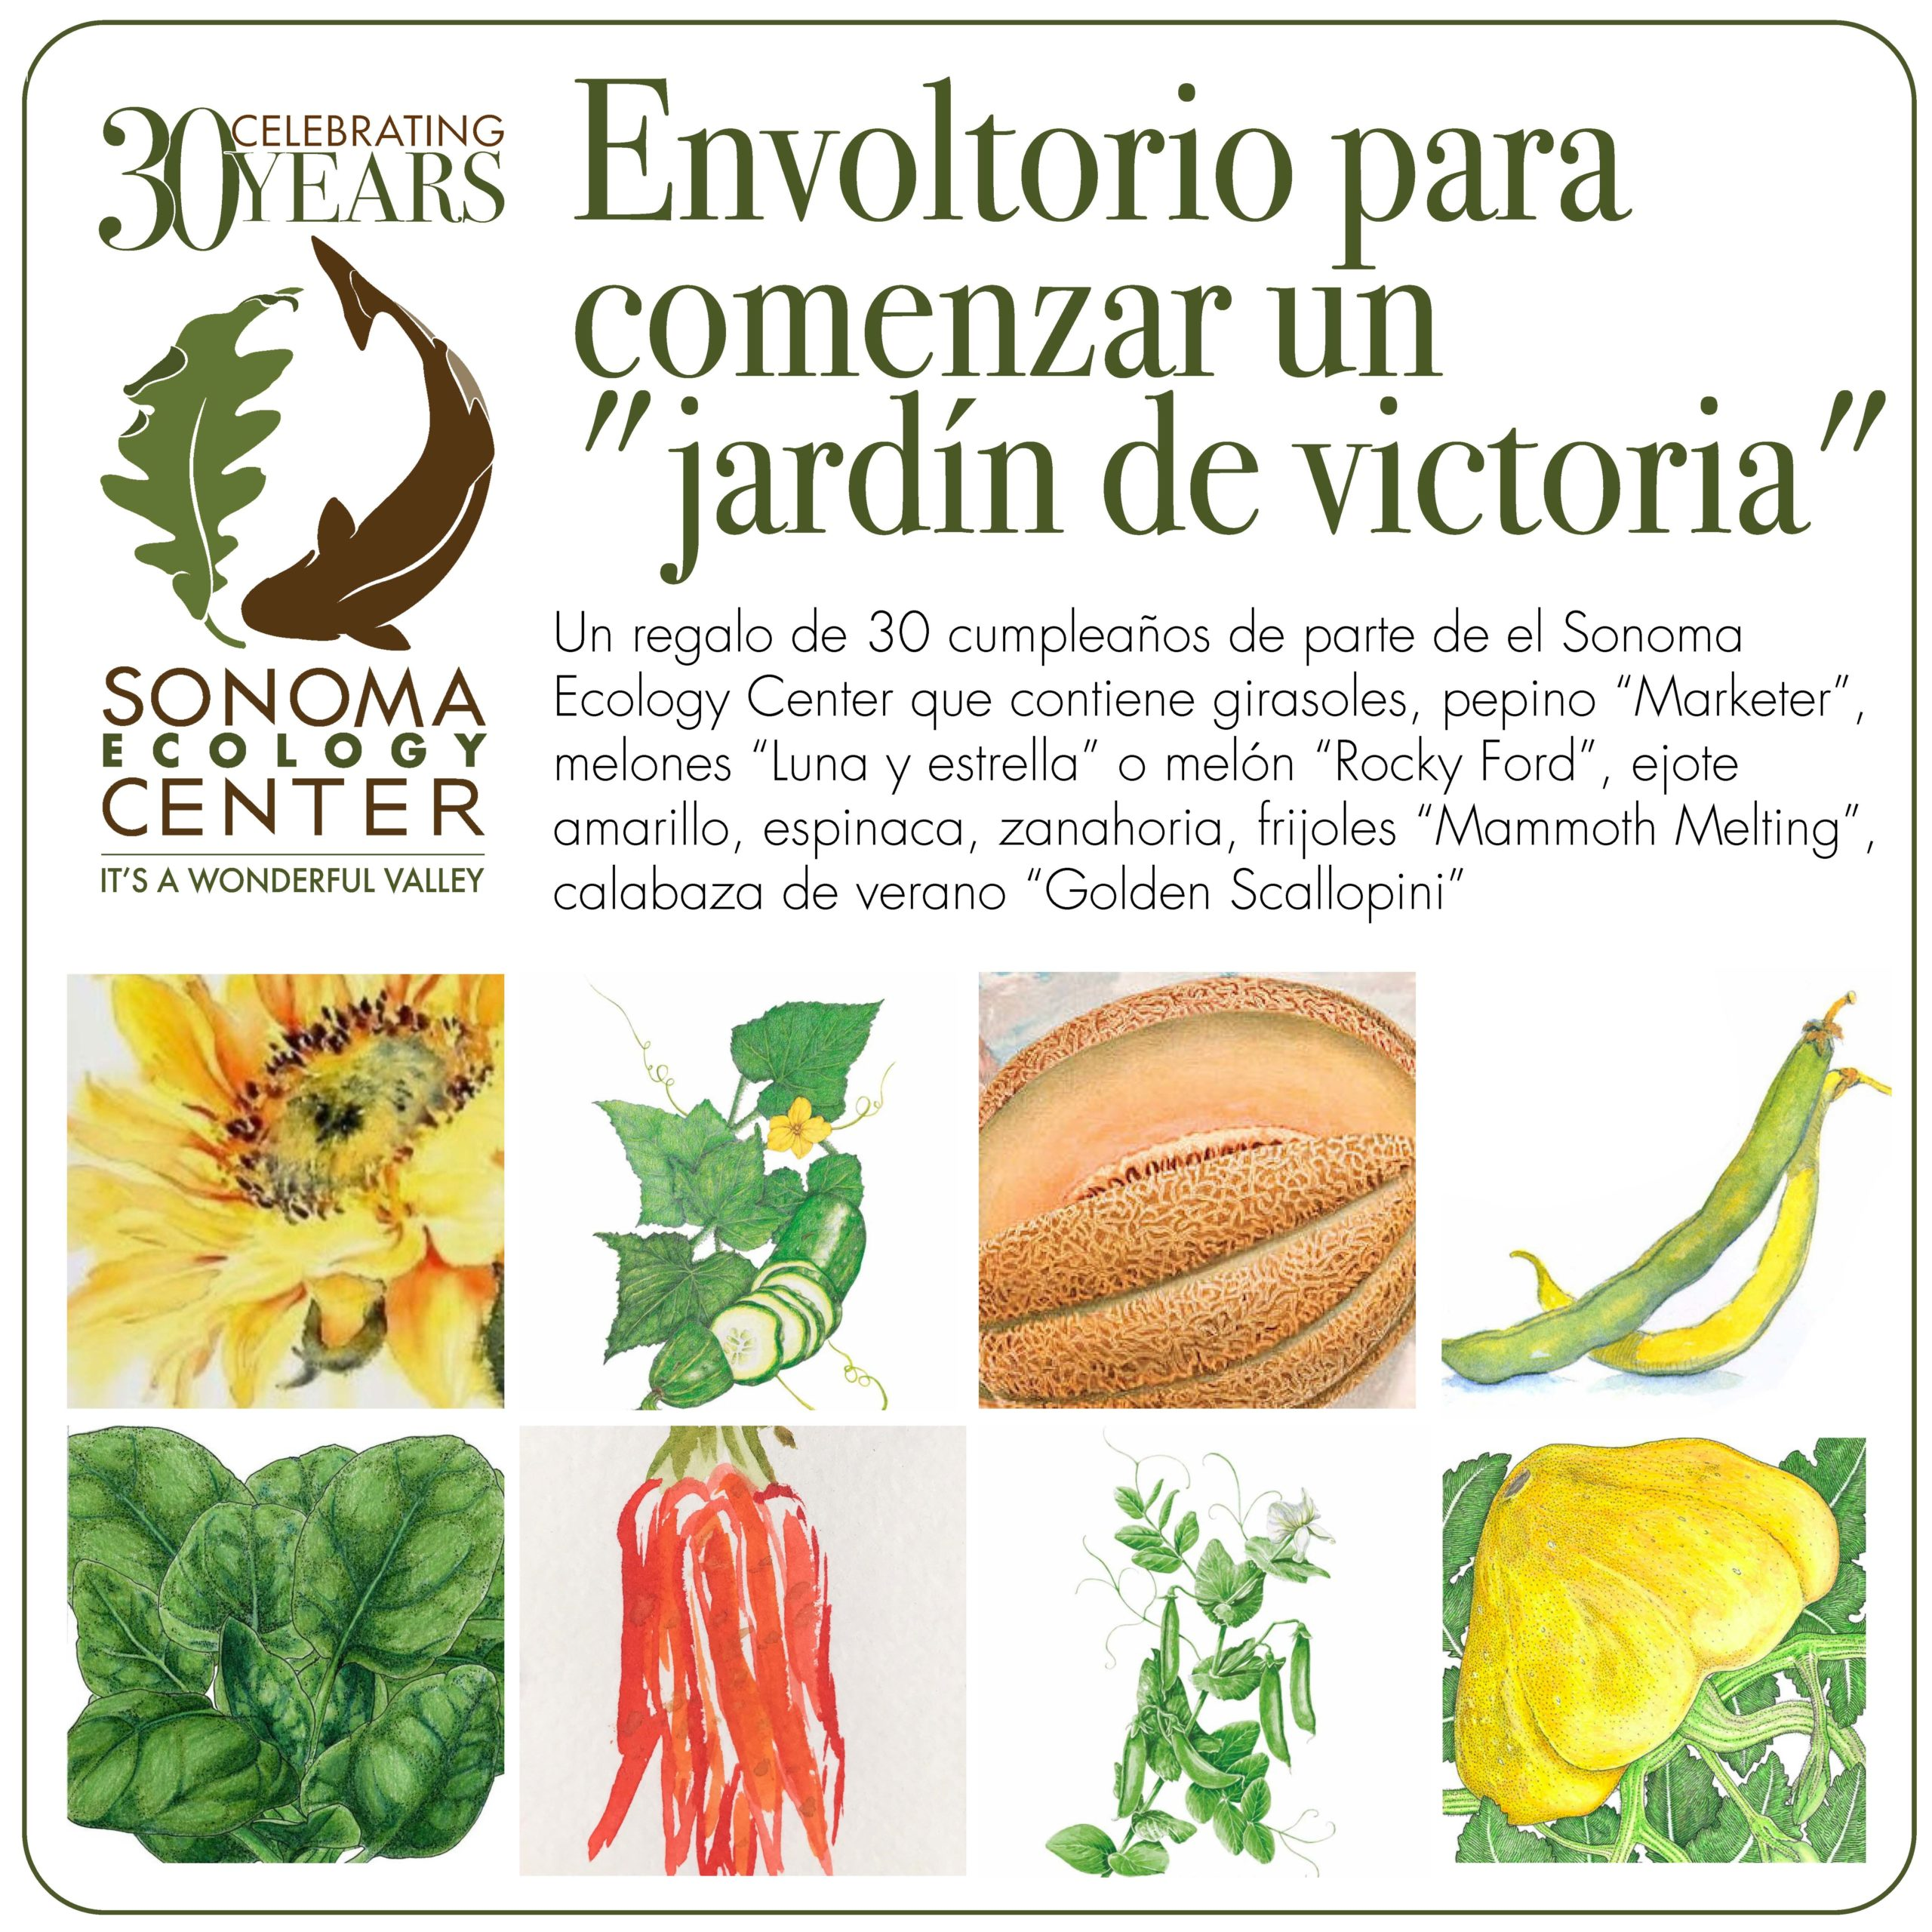 Celebrate Our 30th Anniversary With a Gift of Sonoma Ecology Center Victory Gardens